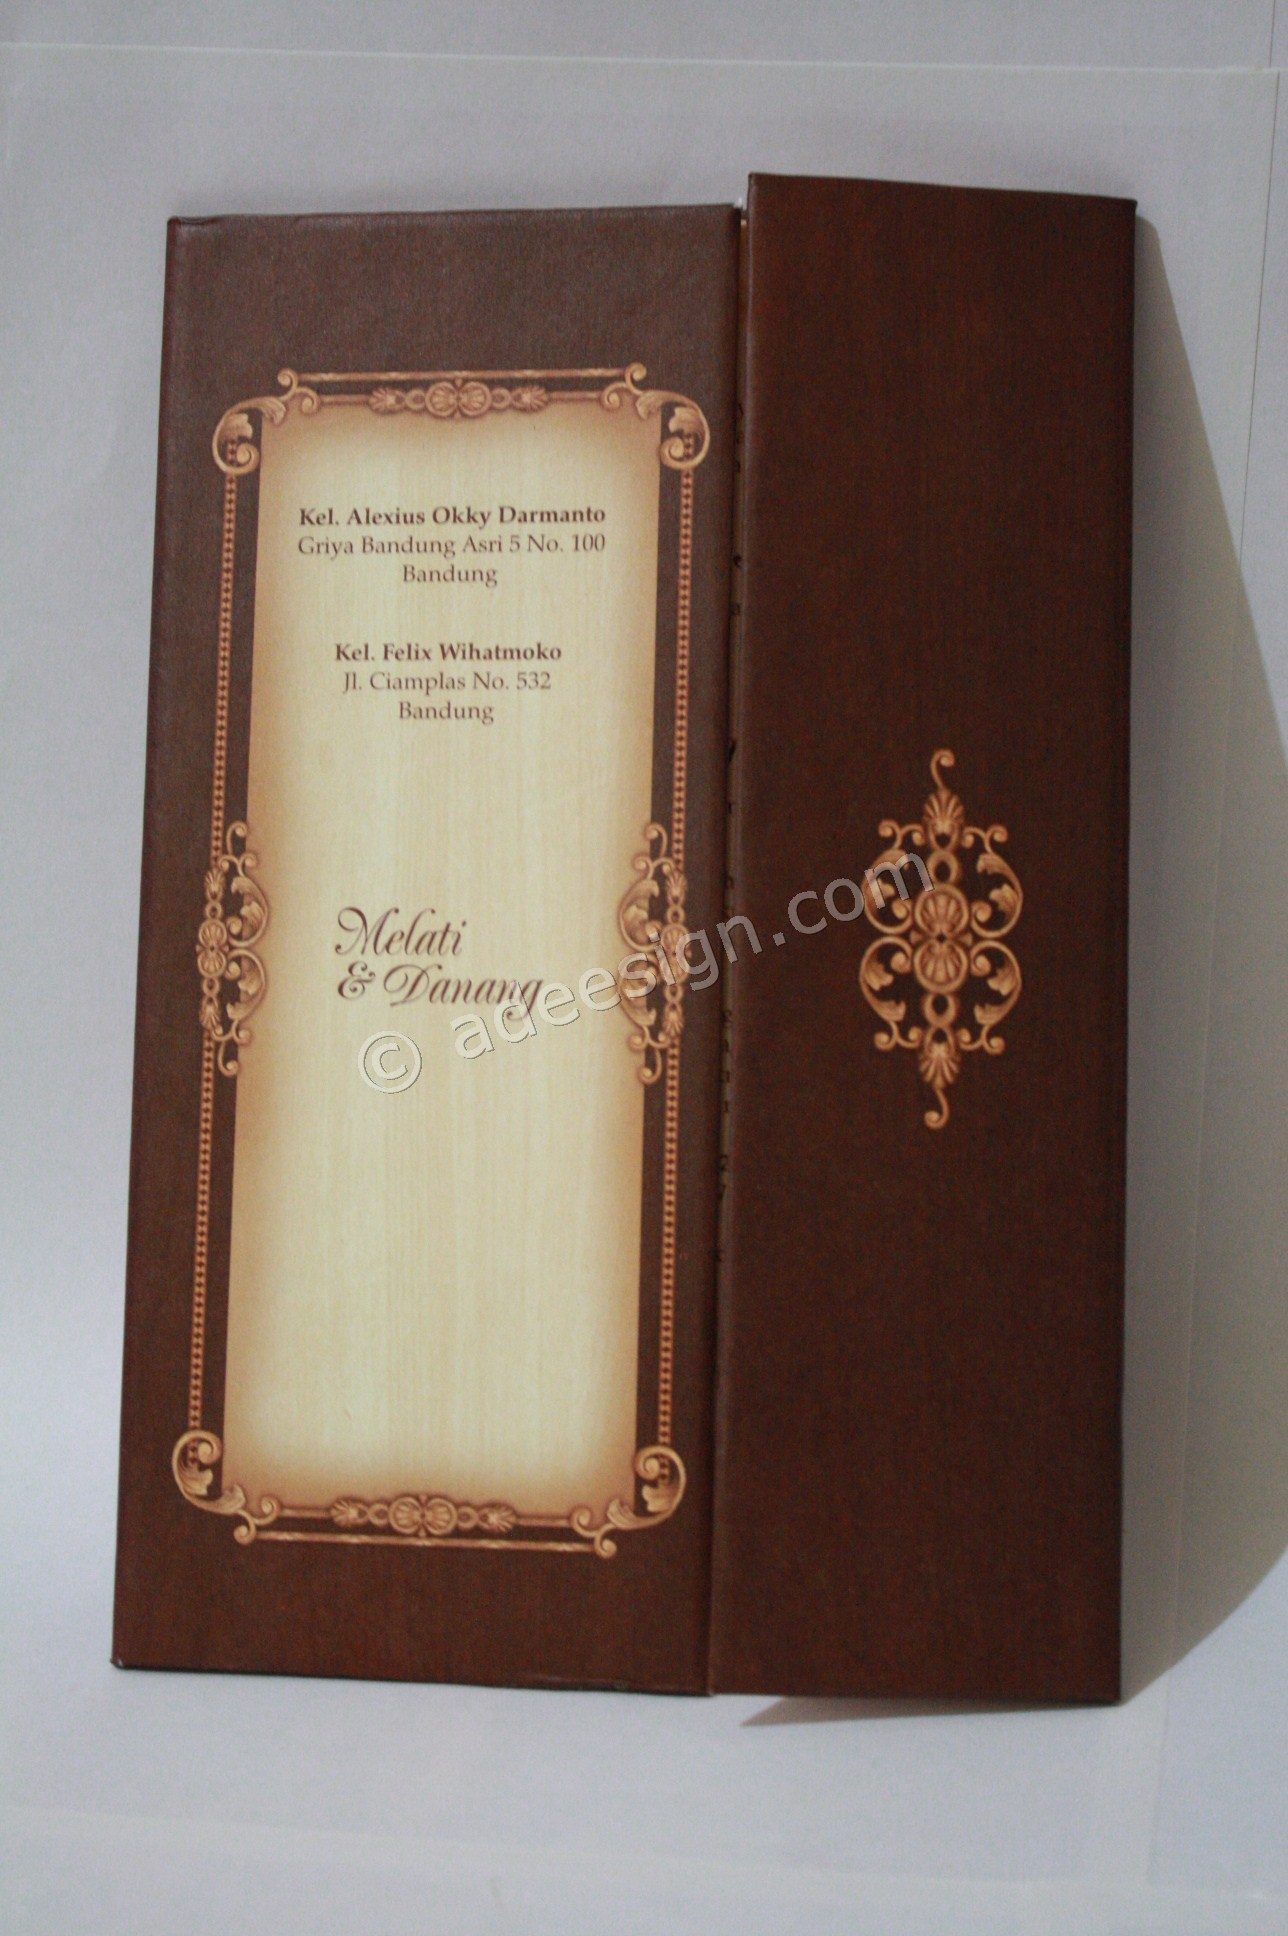 Kartu Undangan Pernikahan Hard Cover Melati dan Danang 2 - Percetakan Wedding Invitations Unik dan Simple di Simomulyo